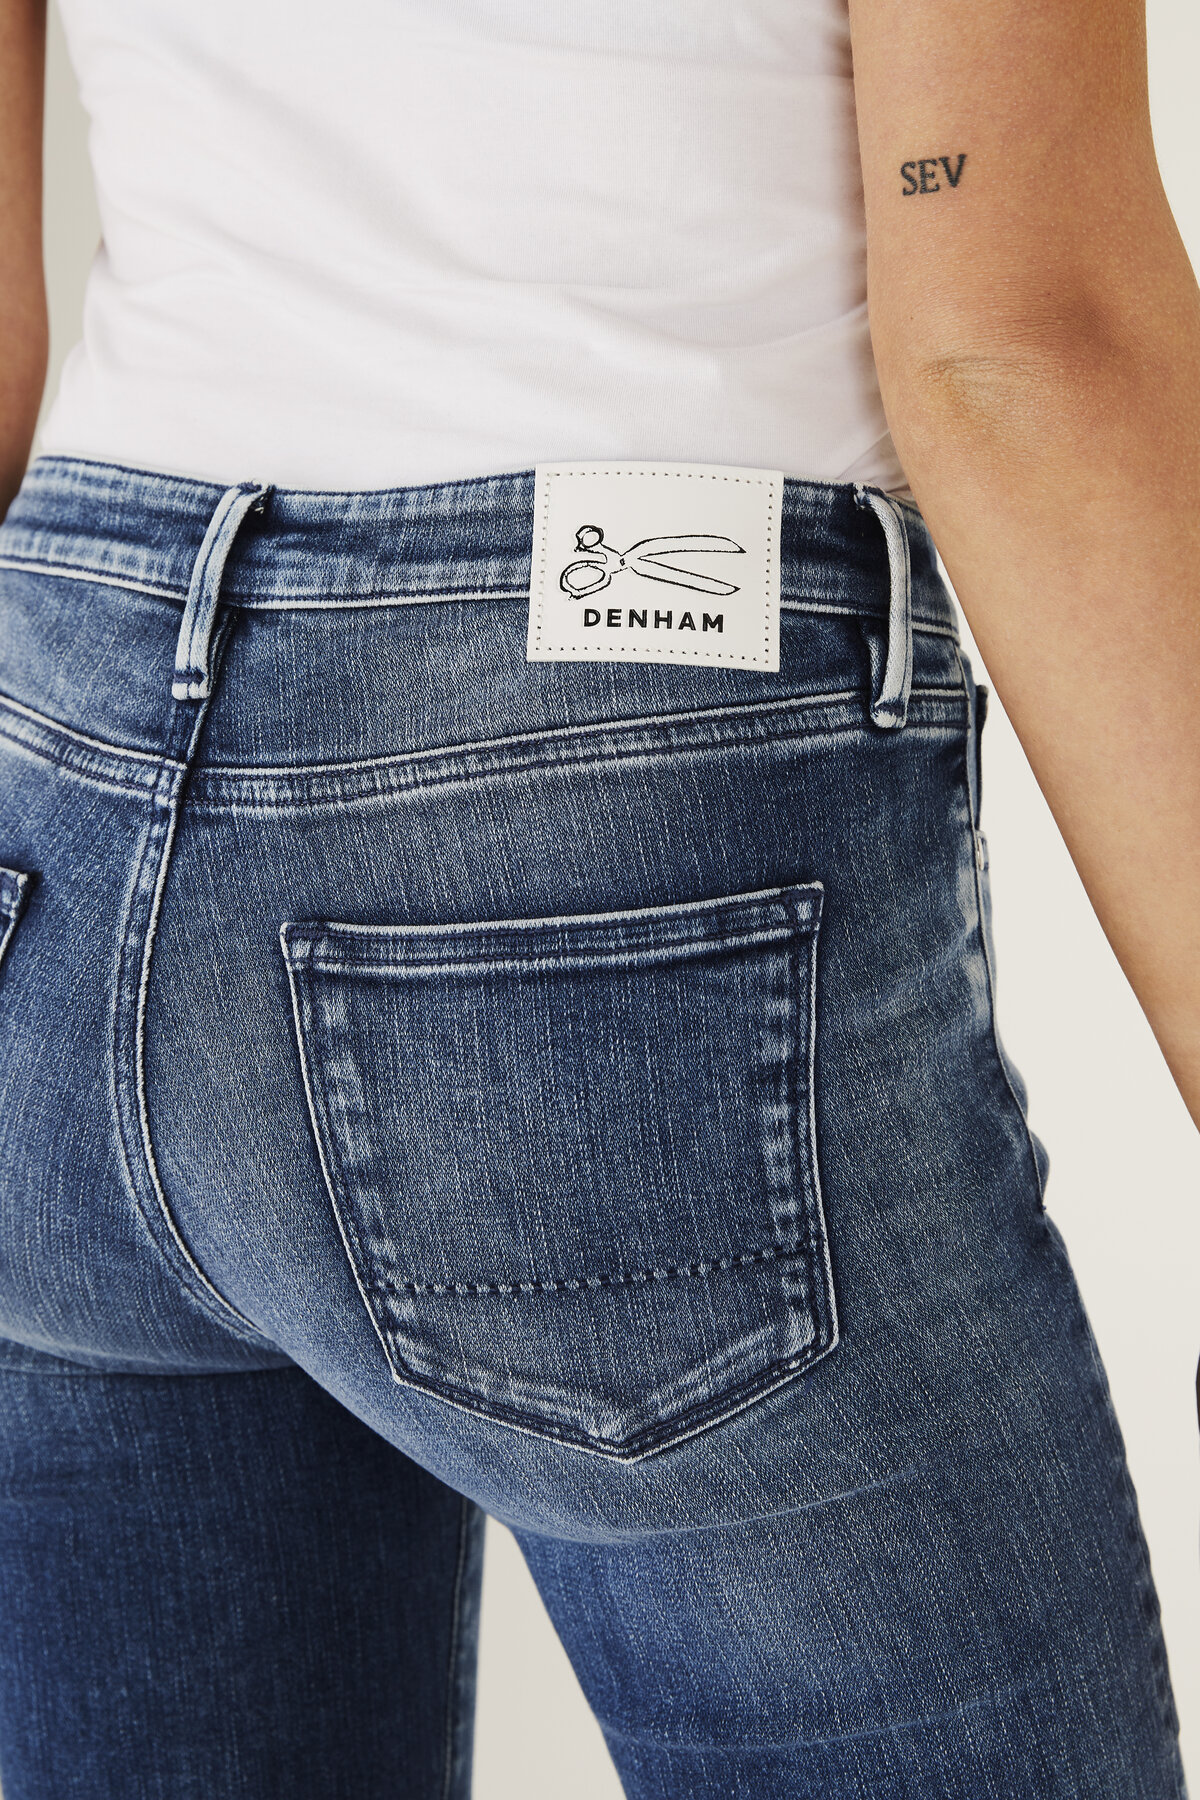 Sharp - Skinny Tight Fit Jeans - Detail